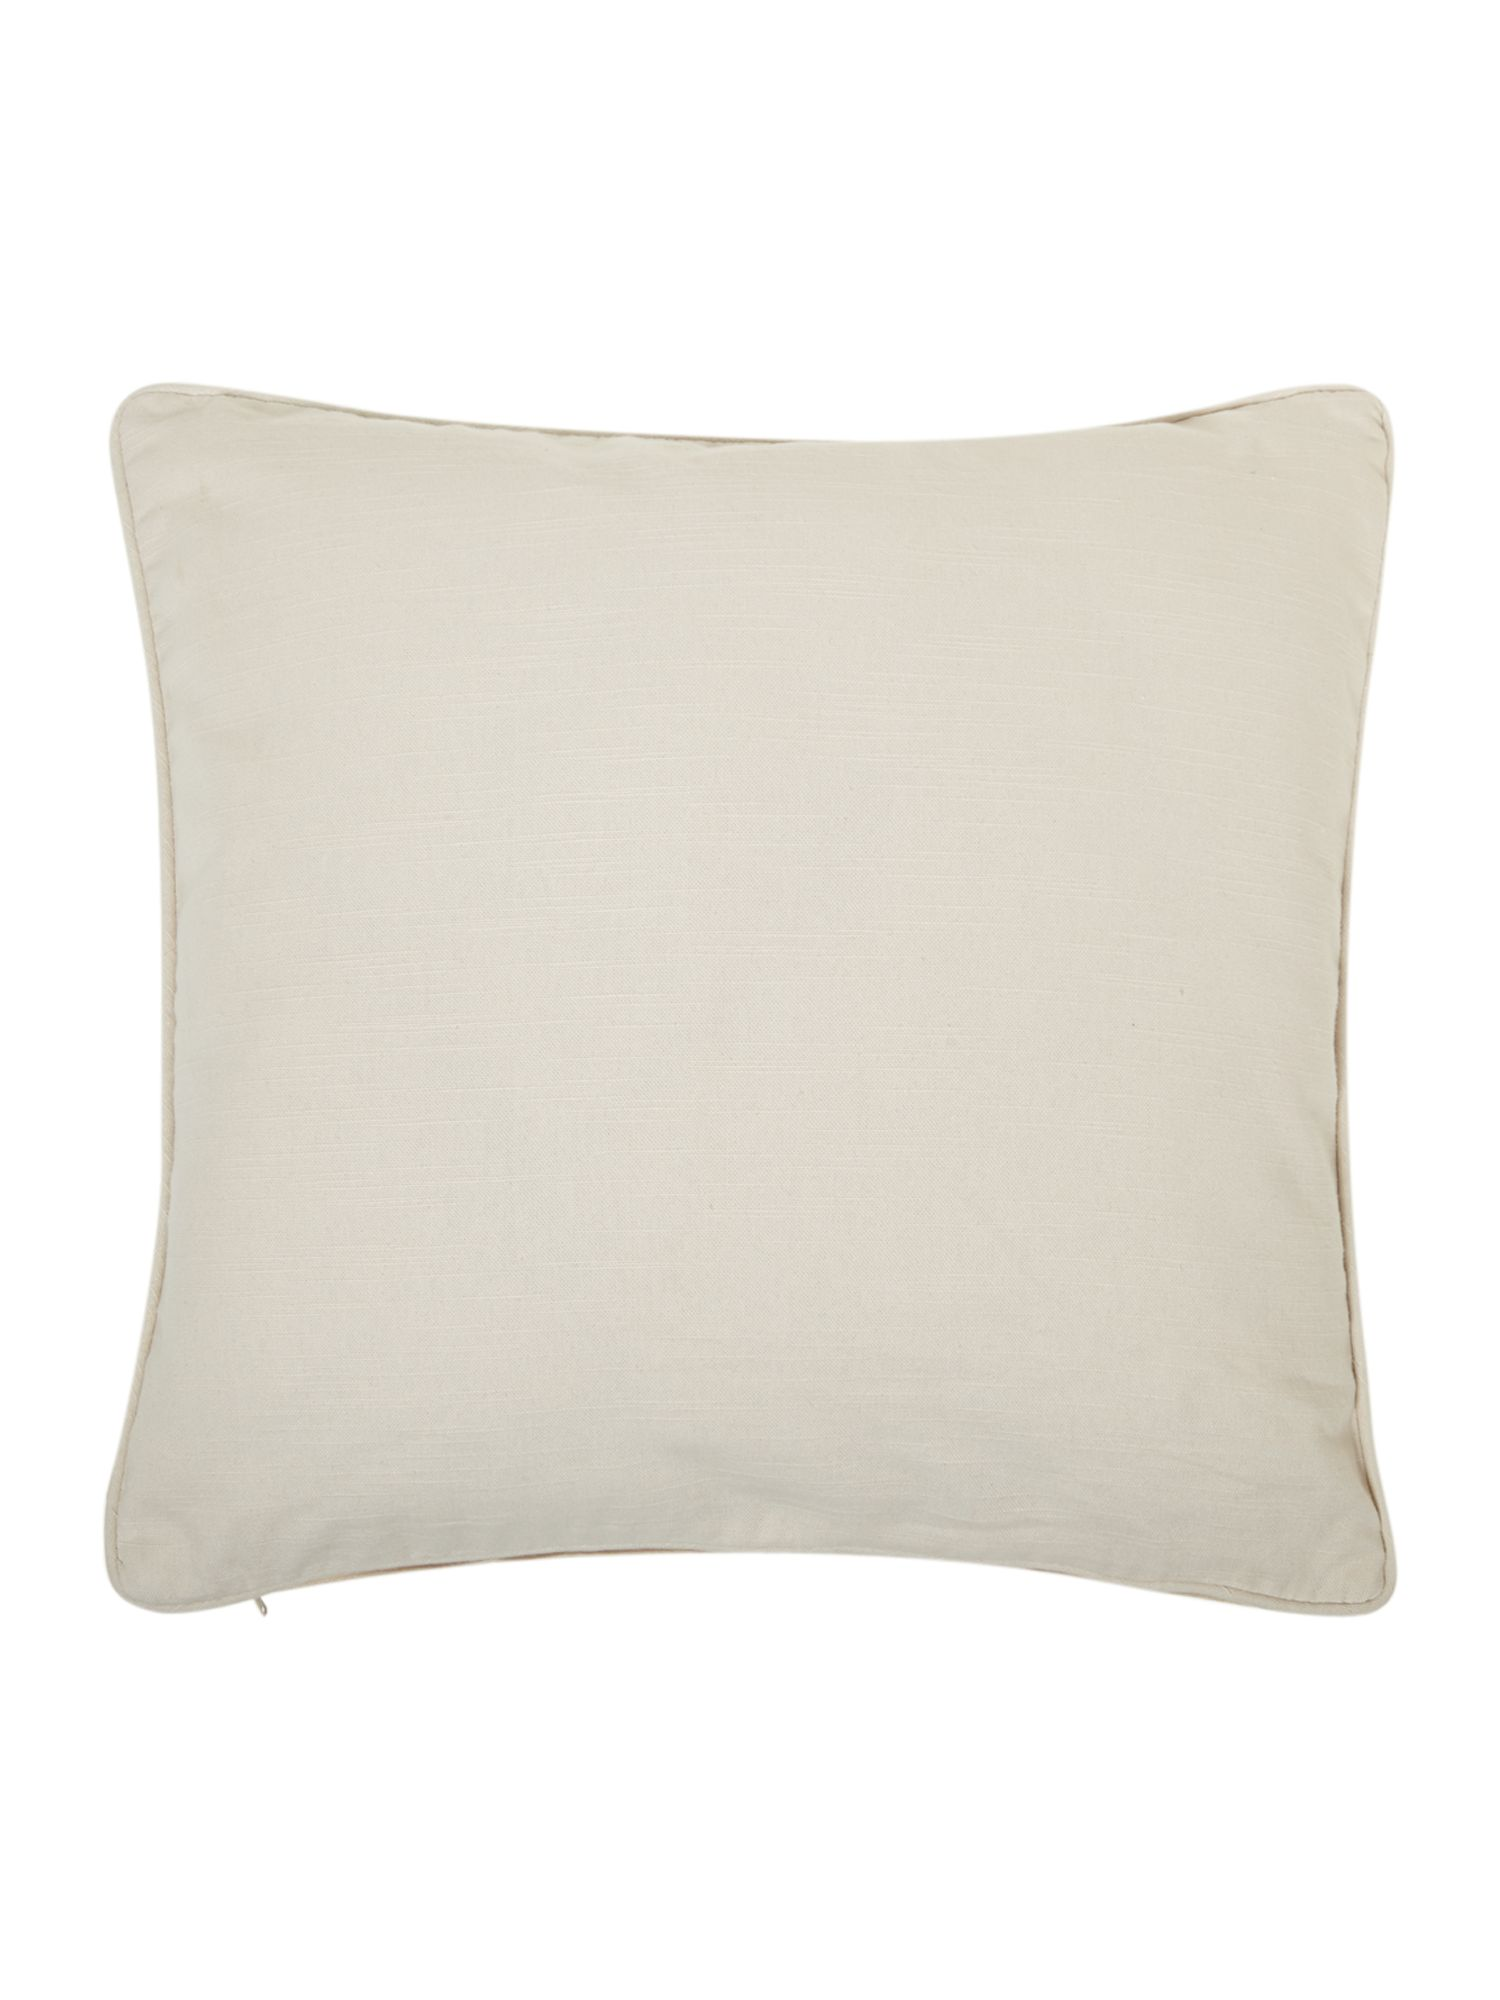 Cream cotton cushion with piping